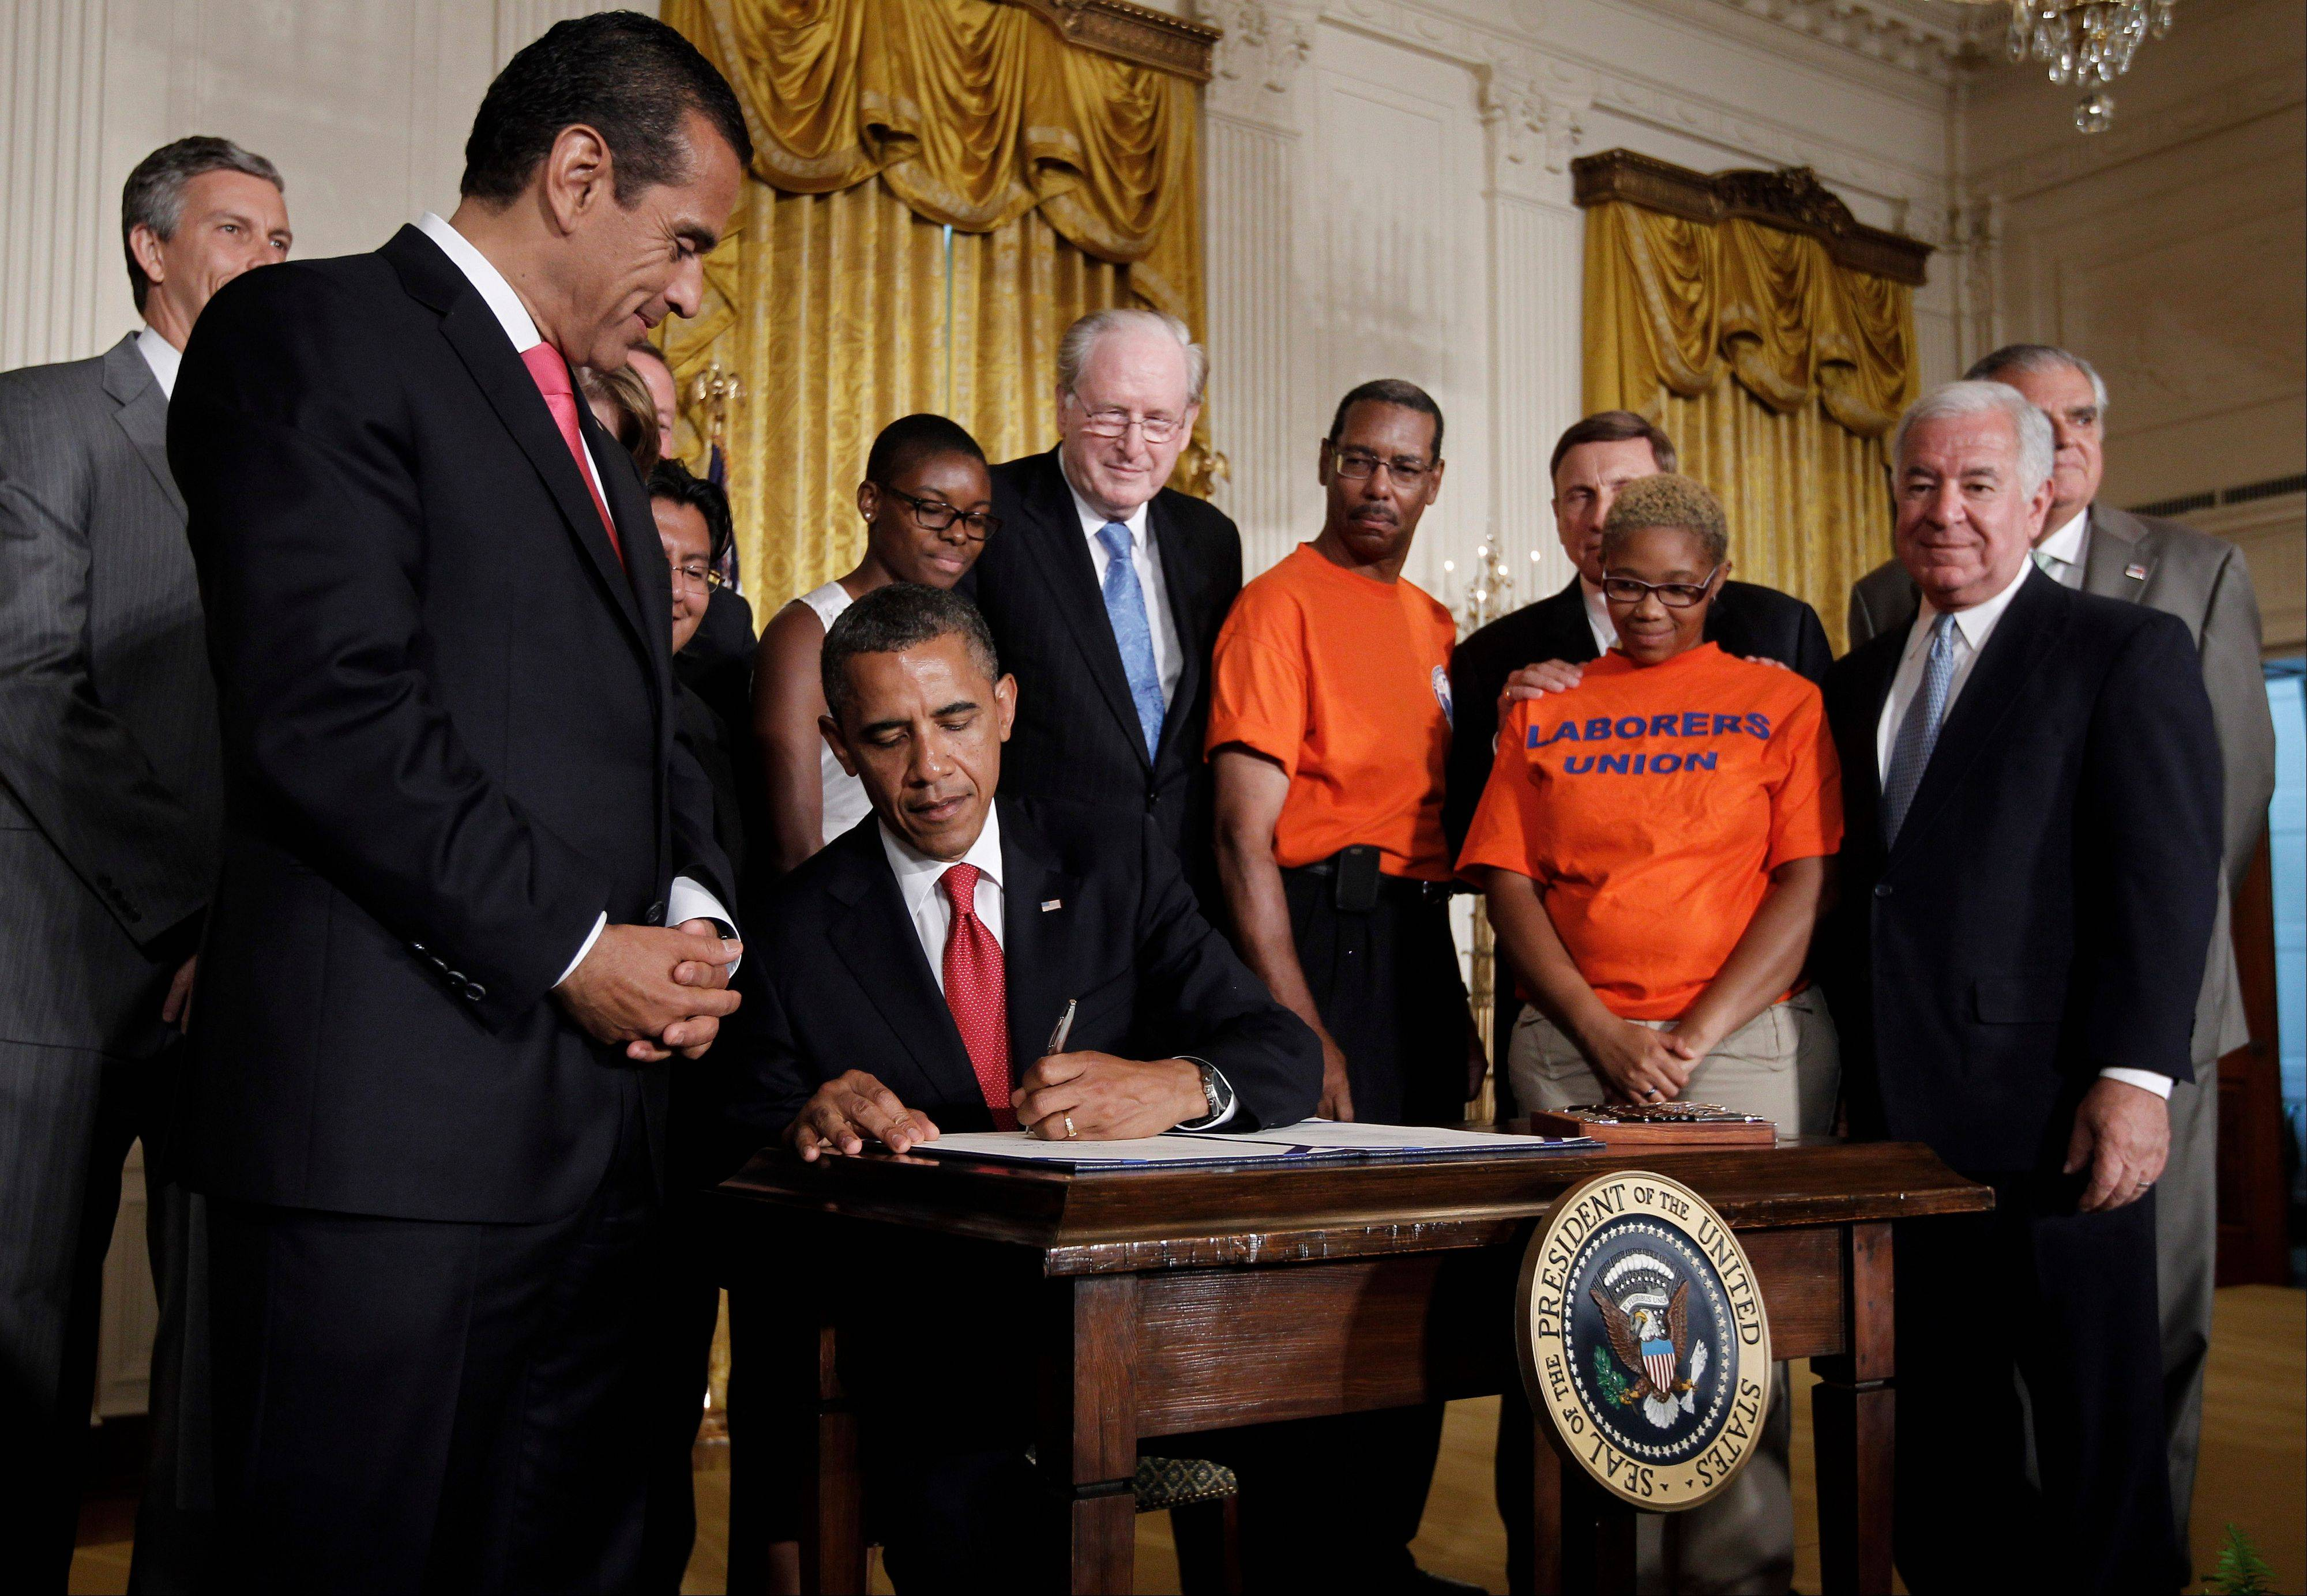 President Barack Obama, flanked by unemployed construction workers, college students and members of Congress, signs HR4348, the Surface Transportation Bill, during a ceremony Friday in the East Room of the White House in Washington. The bill maintains prevents interest rate increases on new loans to millions of college students.